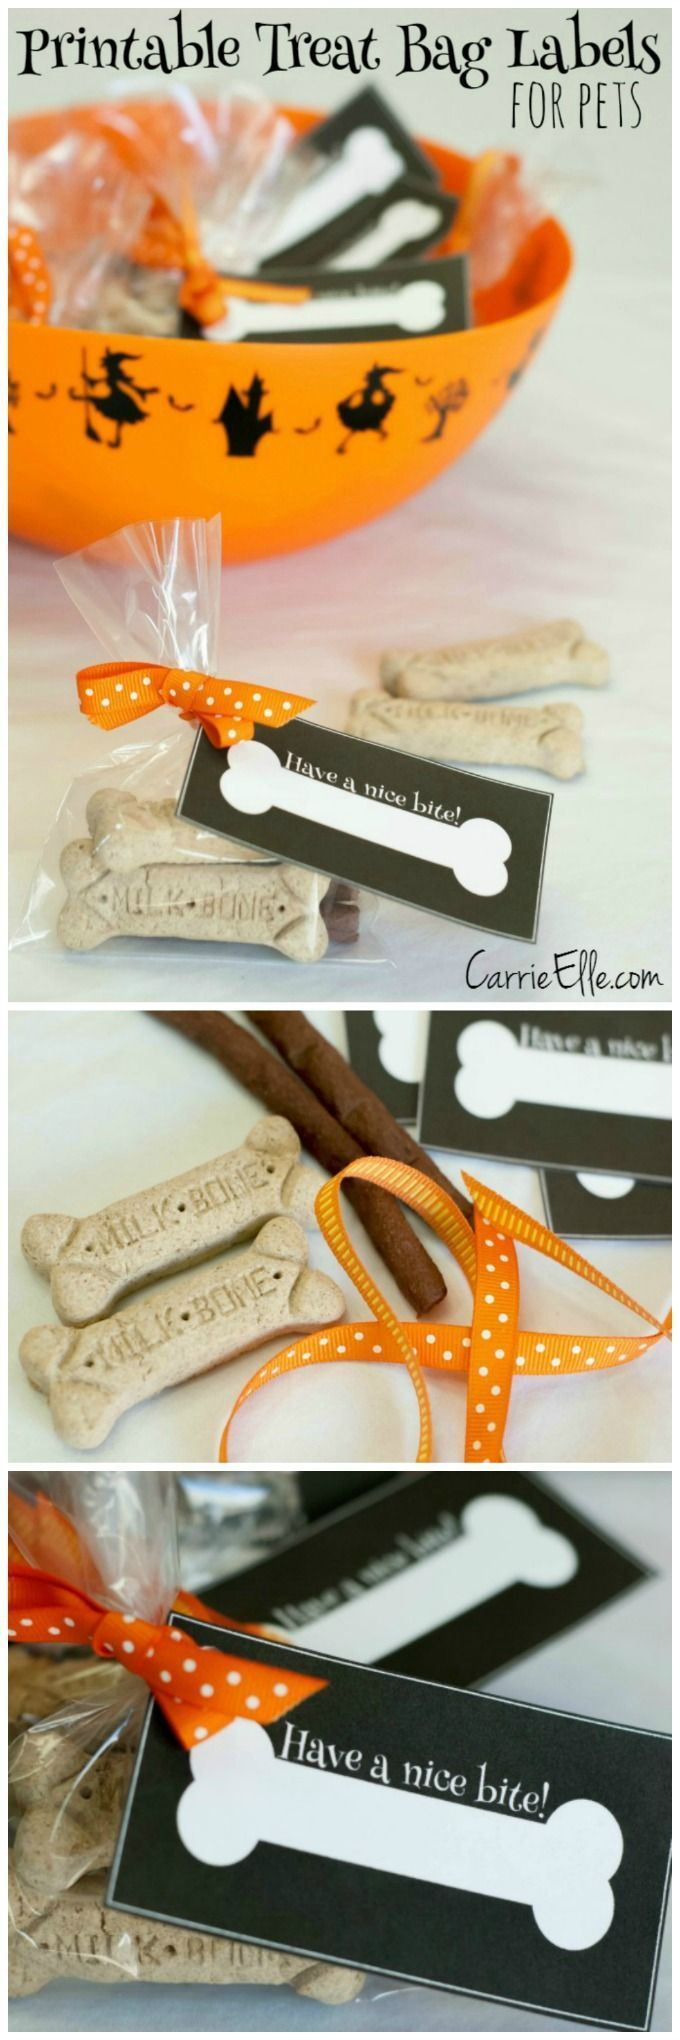 Get your dog in on the Halloween fun! Make these cute printable treat bag labels for your four-legged trick-or-treaters.